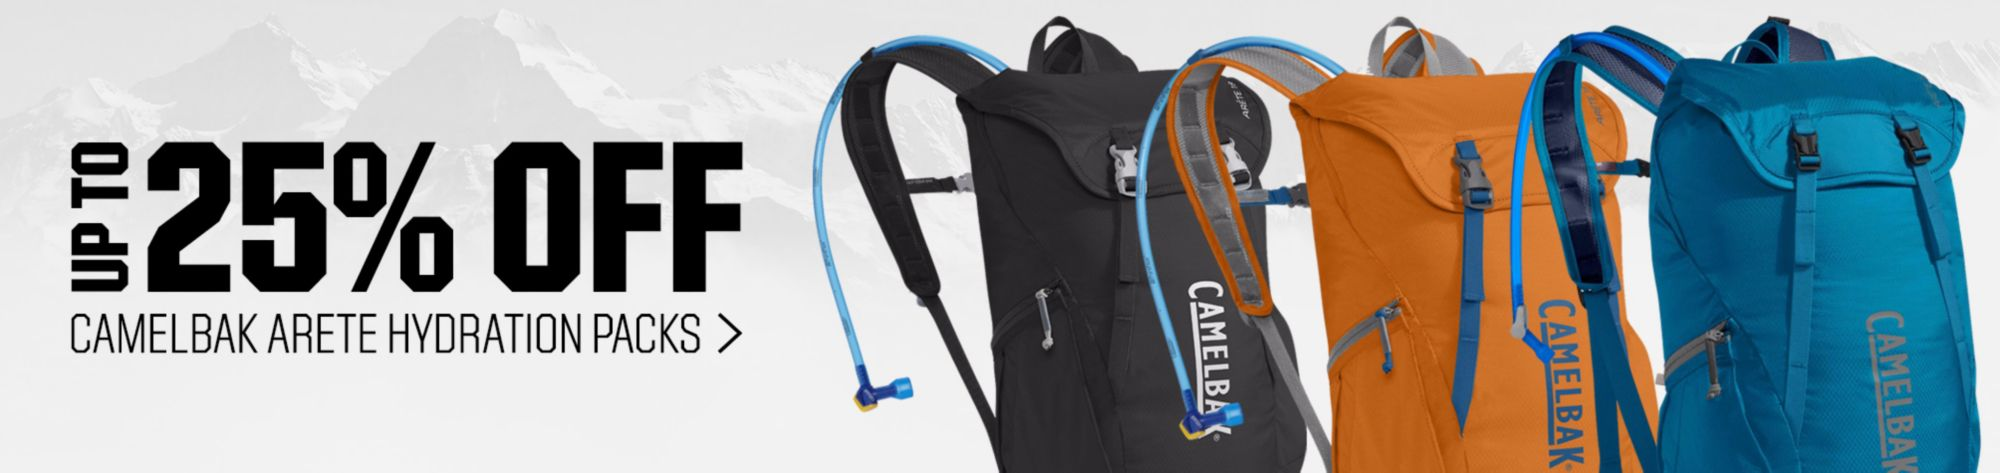 Shop Arete Hydration Packs